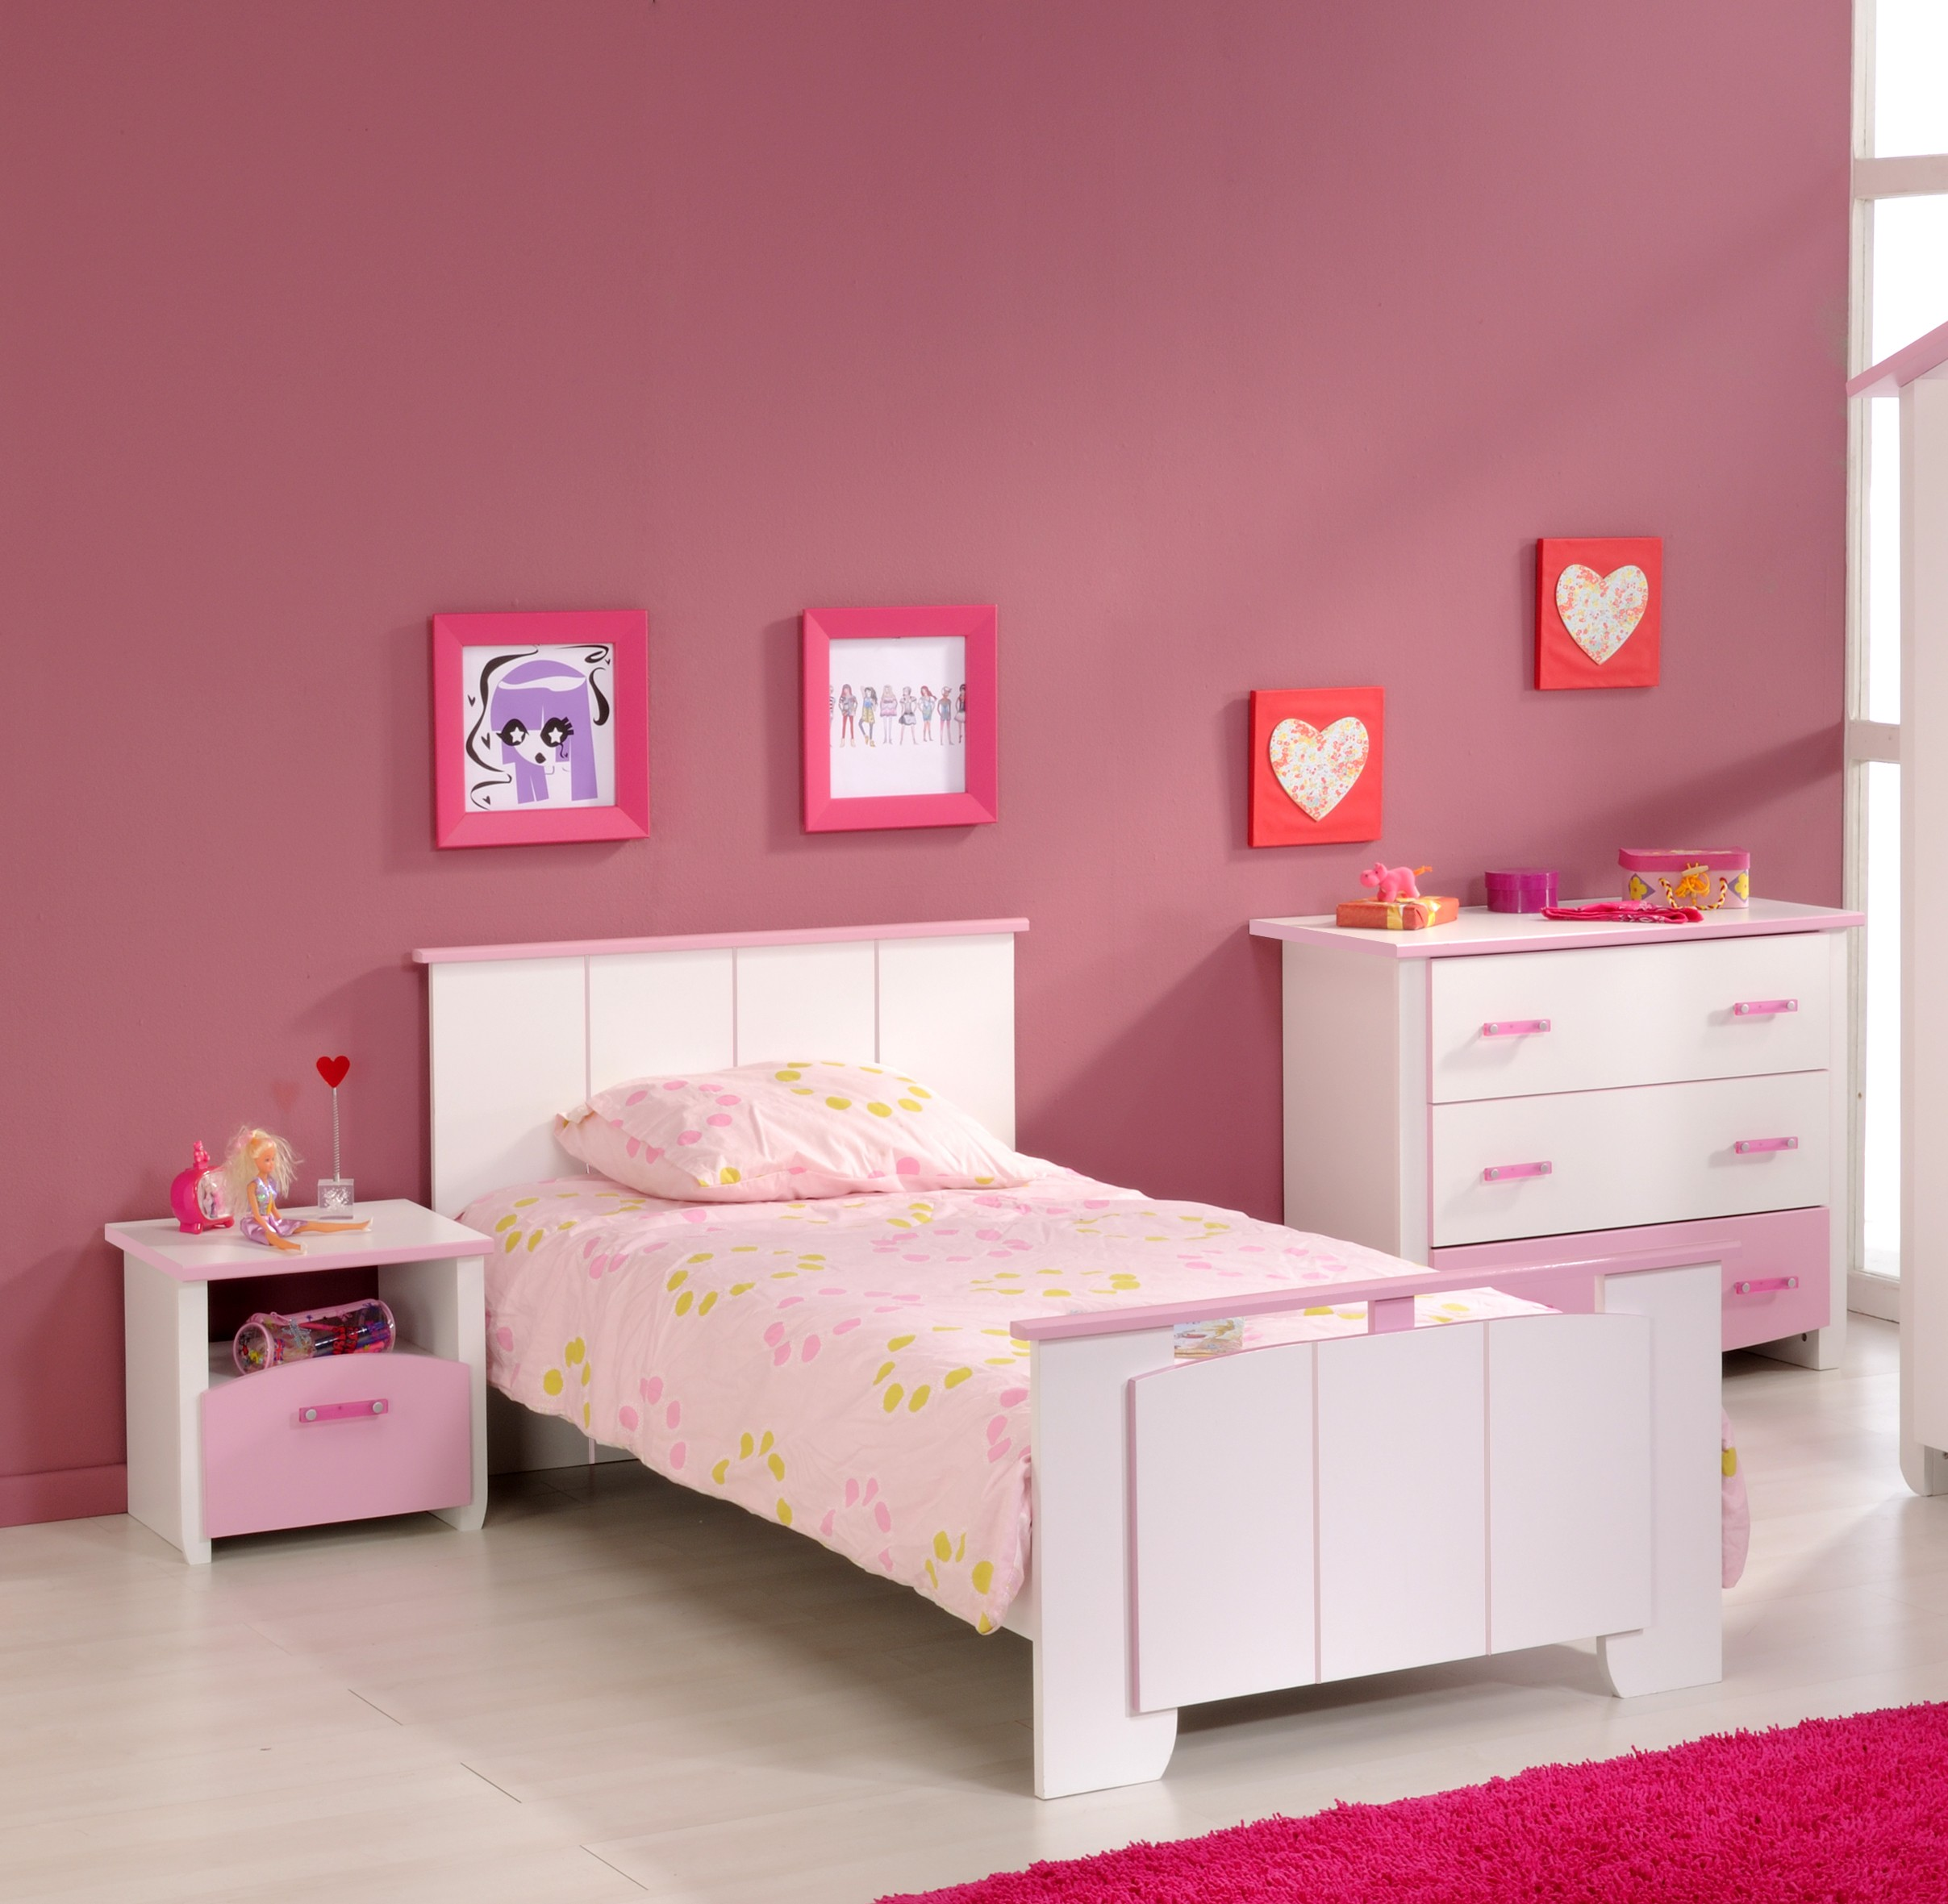 kinderzimmer set kinderbett kommode nachttisch parisot. Black Bedroom Furniture Sets. Home Design Ideas